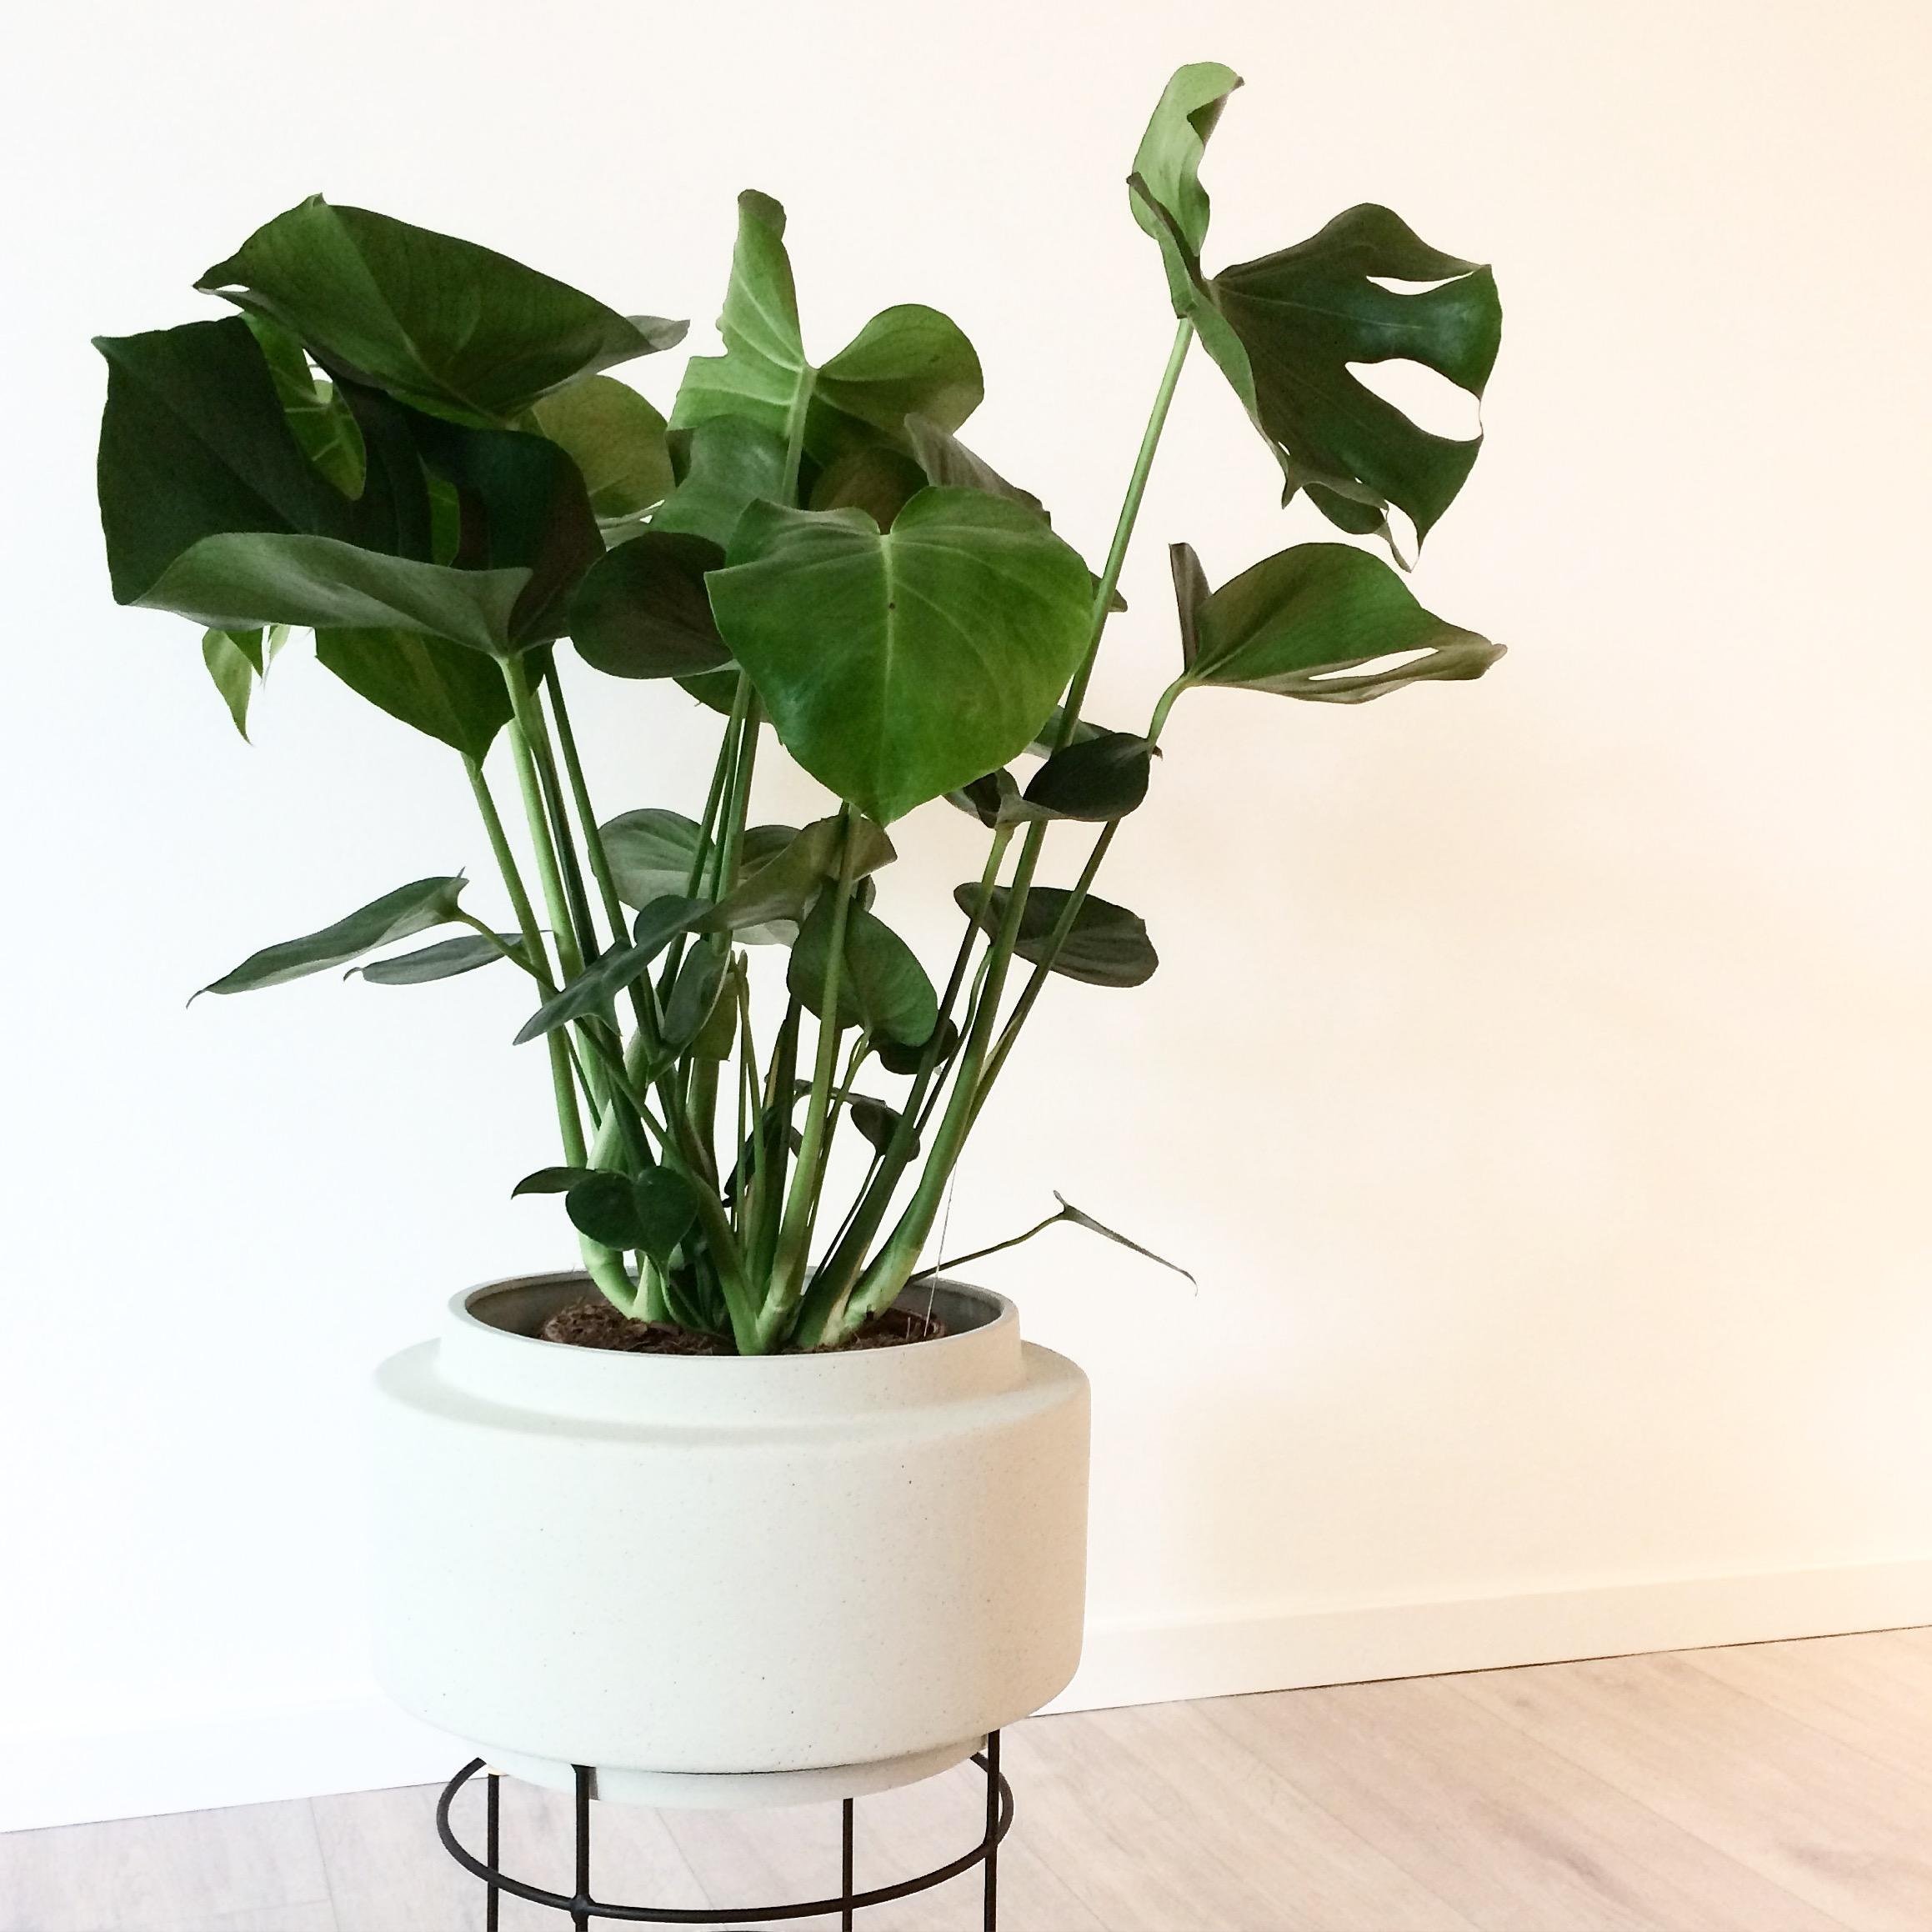 #urbanjungle #monstera #whiteliving #wohnzimmer #interior #livingroom #scandistyle